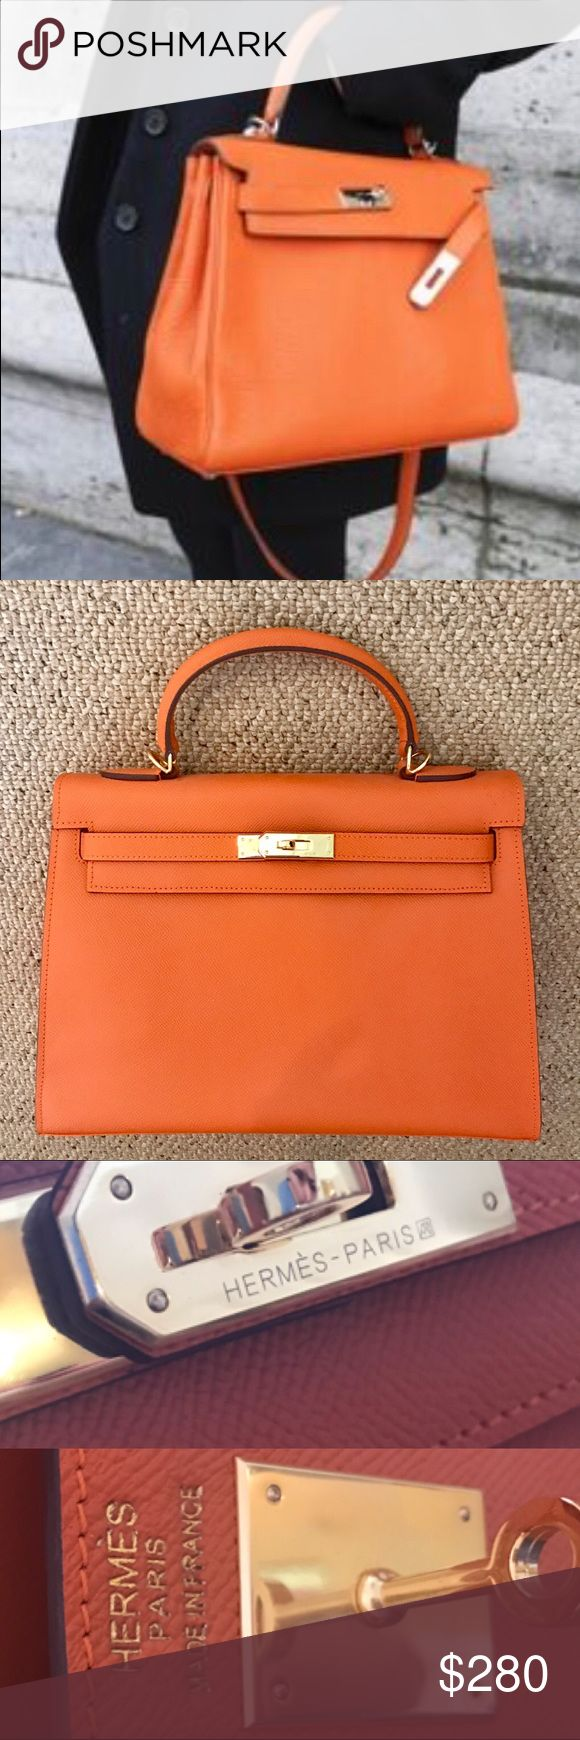 Hermes style Kelly tote 32cm Brand new , got as a gift never worn it no shoulder strap is include. price reflect authencity (sorry ) material is hard not the soft leather one Hermes Bags Totes